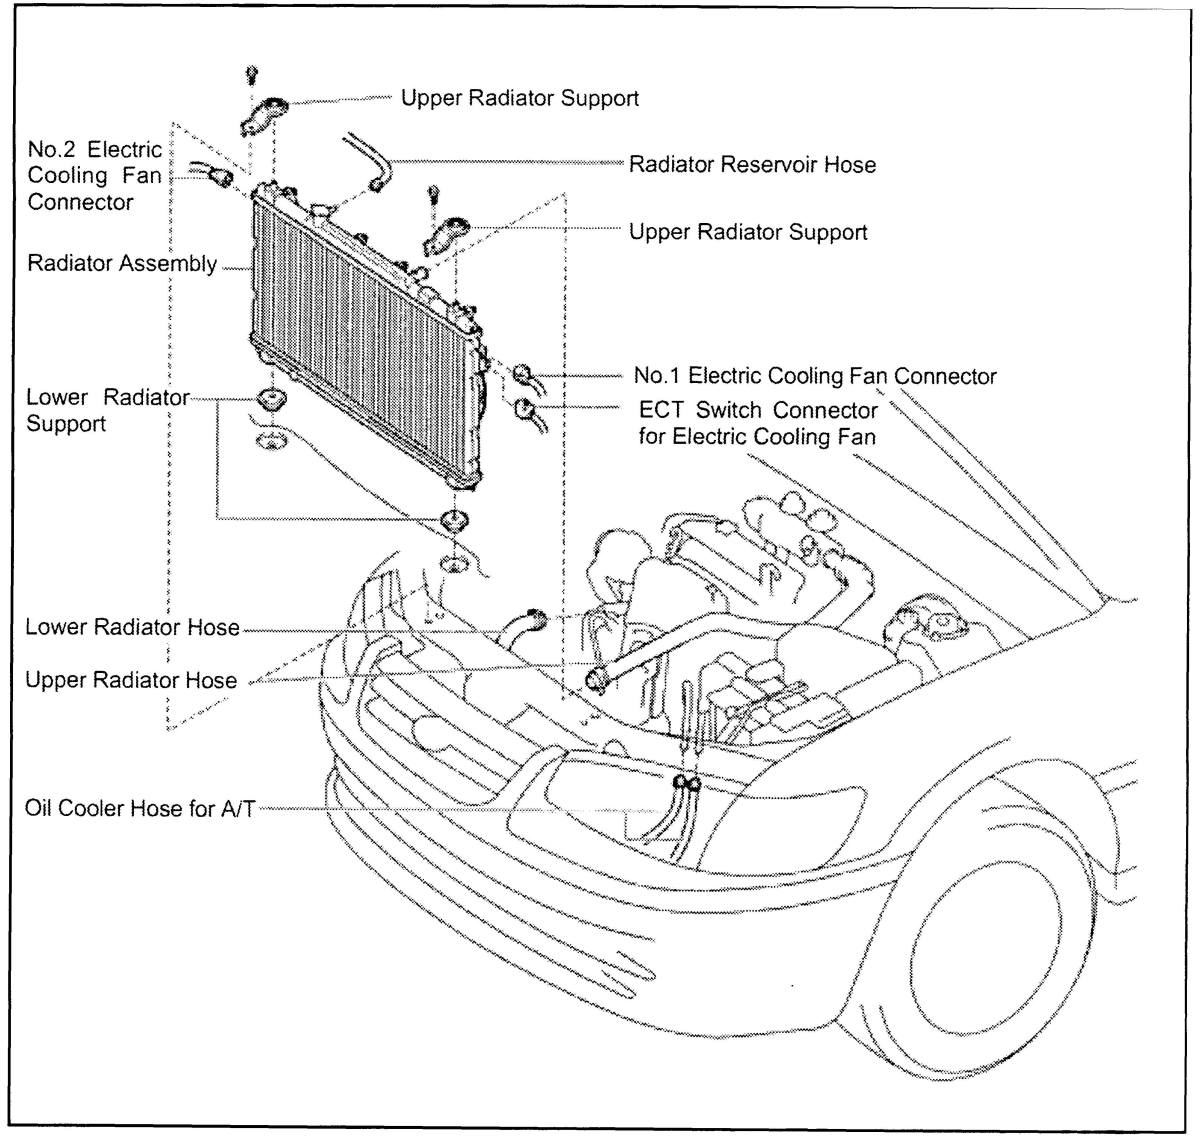 2007 Chrysler 300 Radio Wiring Diagram in addition 1993 Chevrolet Cavalier 2 2l Serpentine Belt Diagram further Chevrolet Silverado 5 3 2005 Specs And Images together with 2 2 Ecotec Engine Diagram Trying To Find The Vin On A 2 2l Ecotec Sc likewise Toyota Camry Radiator Replacement. on 2006 chevy malibu engine diagram